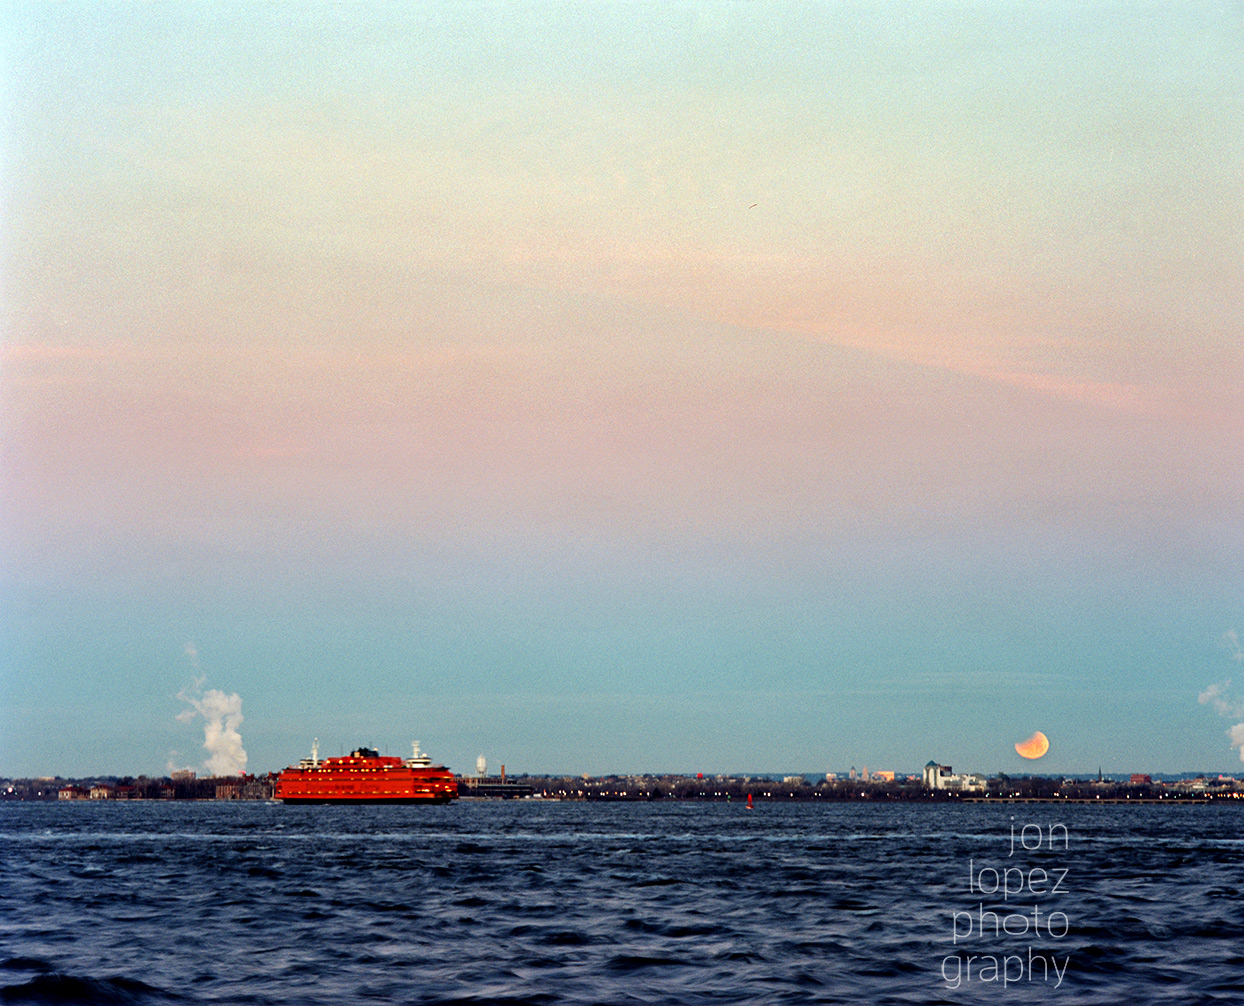 The Staten Island ferry heads to lower Manhattan as the super blue blood moon sets beyond the Hudson River. This image was shot on Fuji Pro 400h film using a Mamiya RB67 medium format camera. Photo credit: Jonathan Lopez